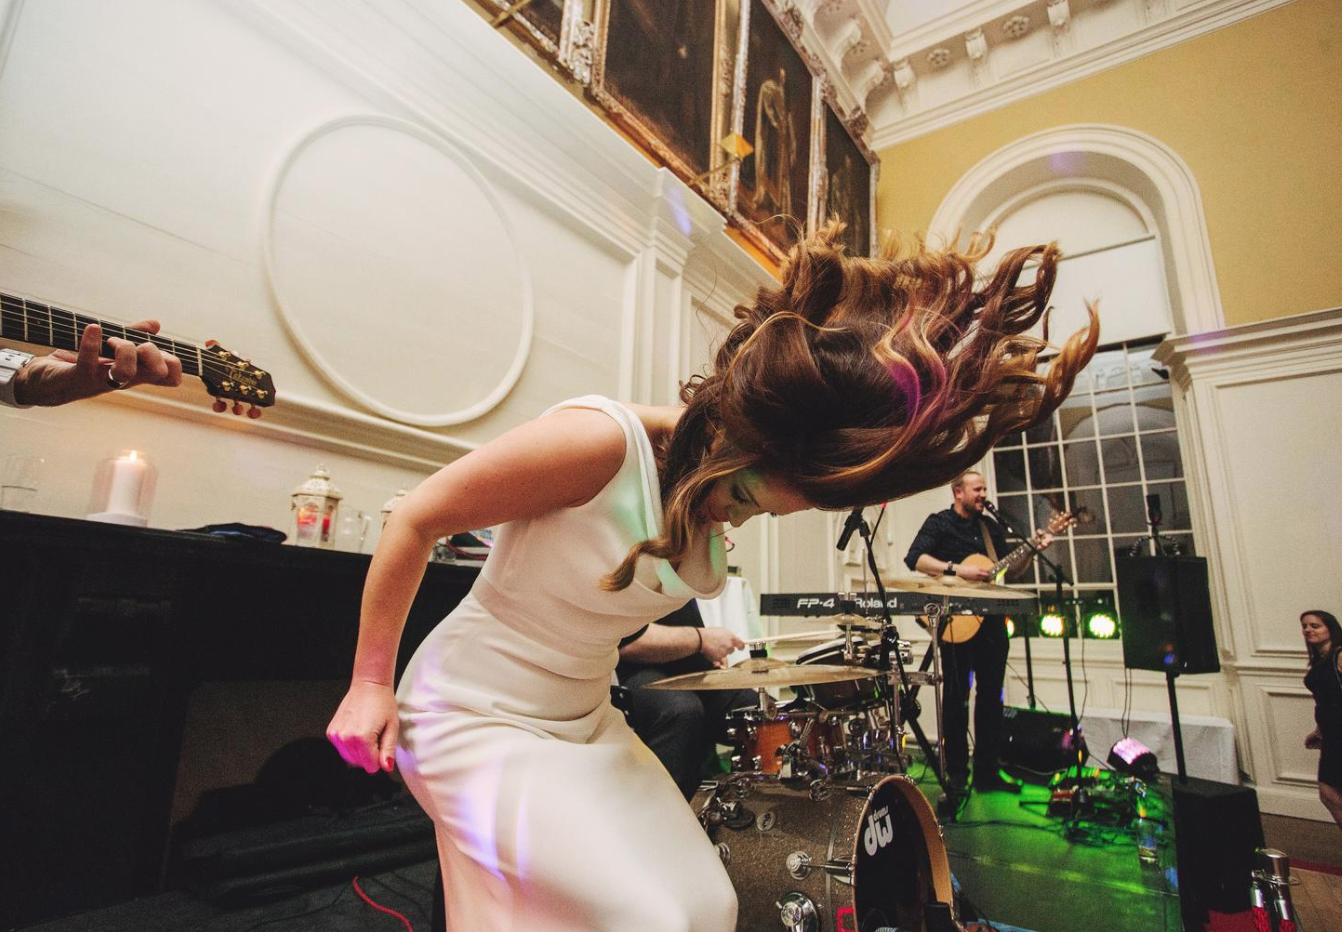 Our Top 5 Wedding Reception Songs